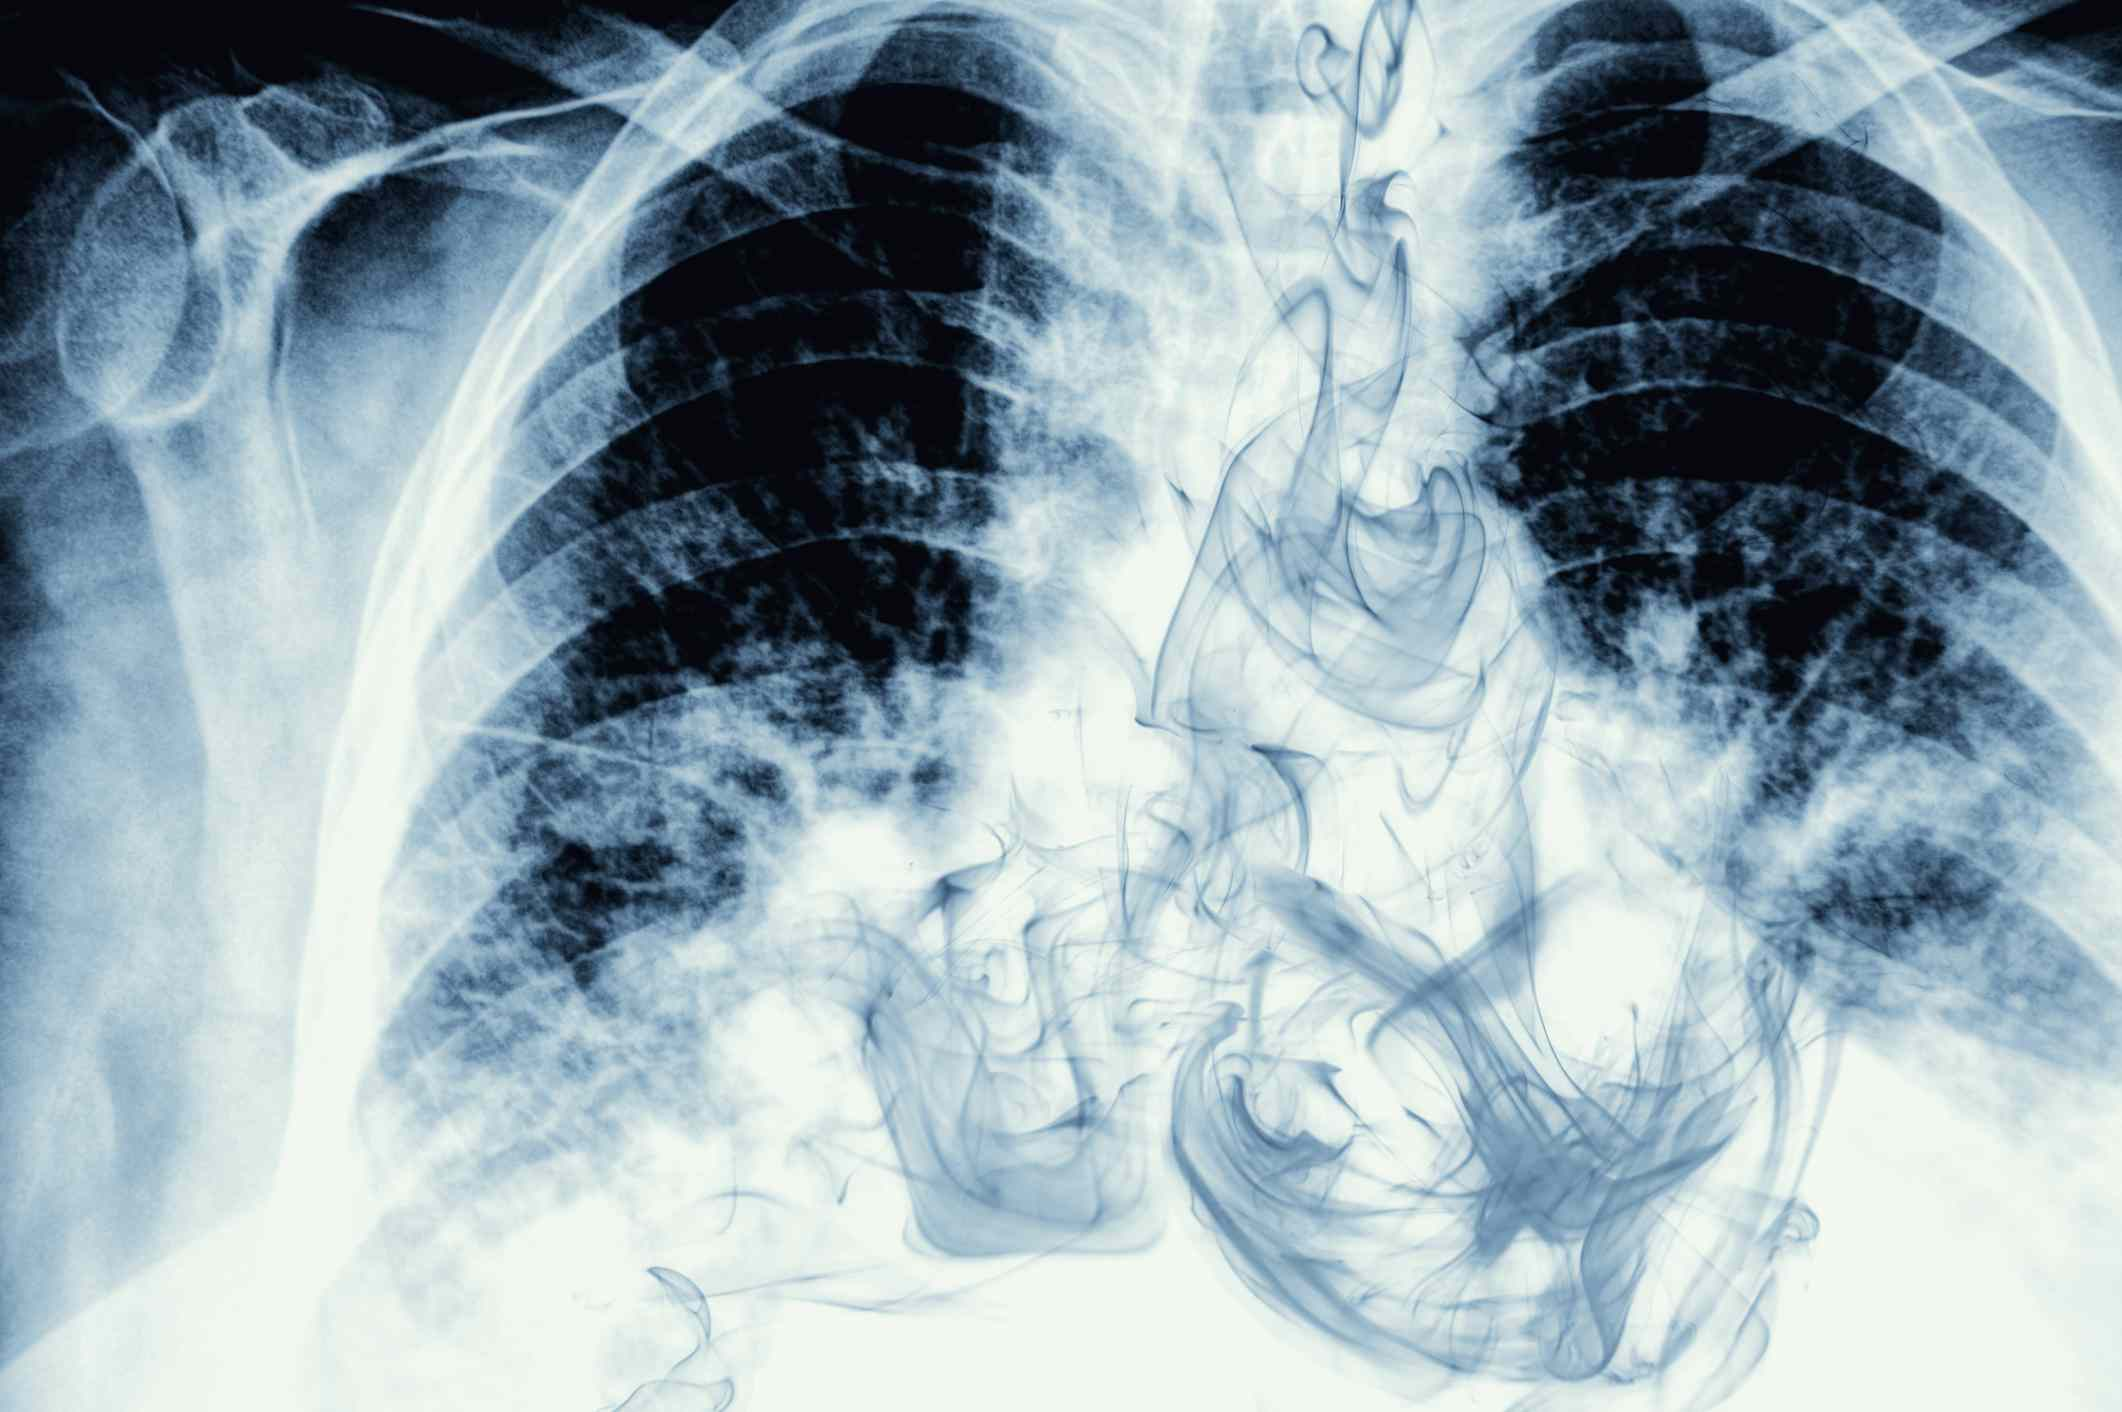 Chest X-ray showing smoke in the chest